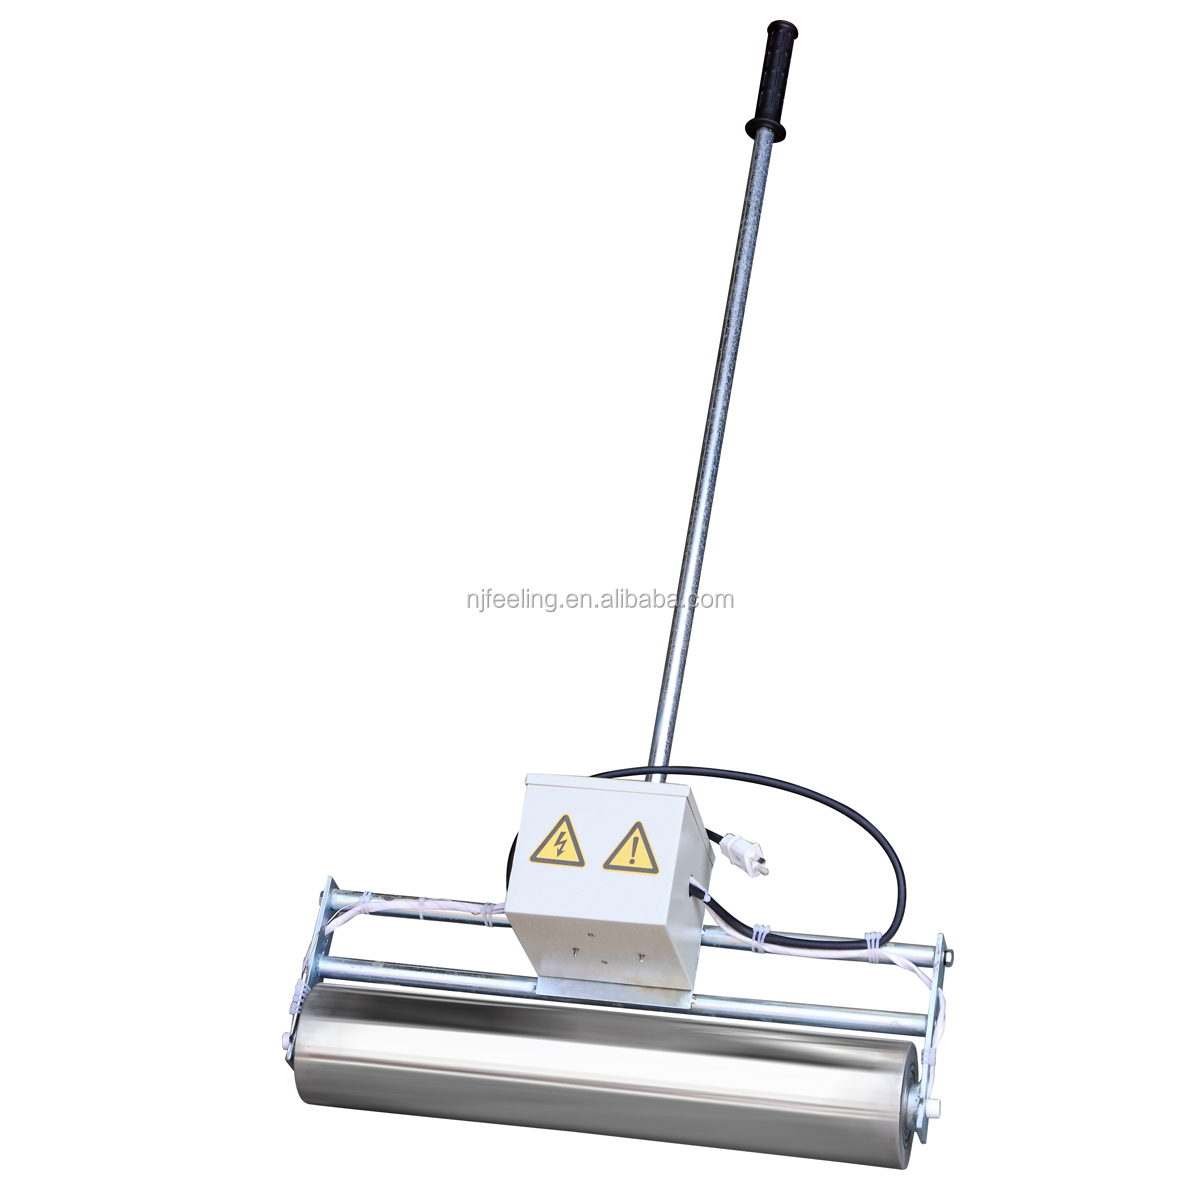 heating roller for epdm granules playgaround <strong>tool</strong> best price FN-AY-2001144